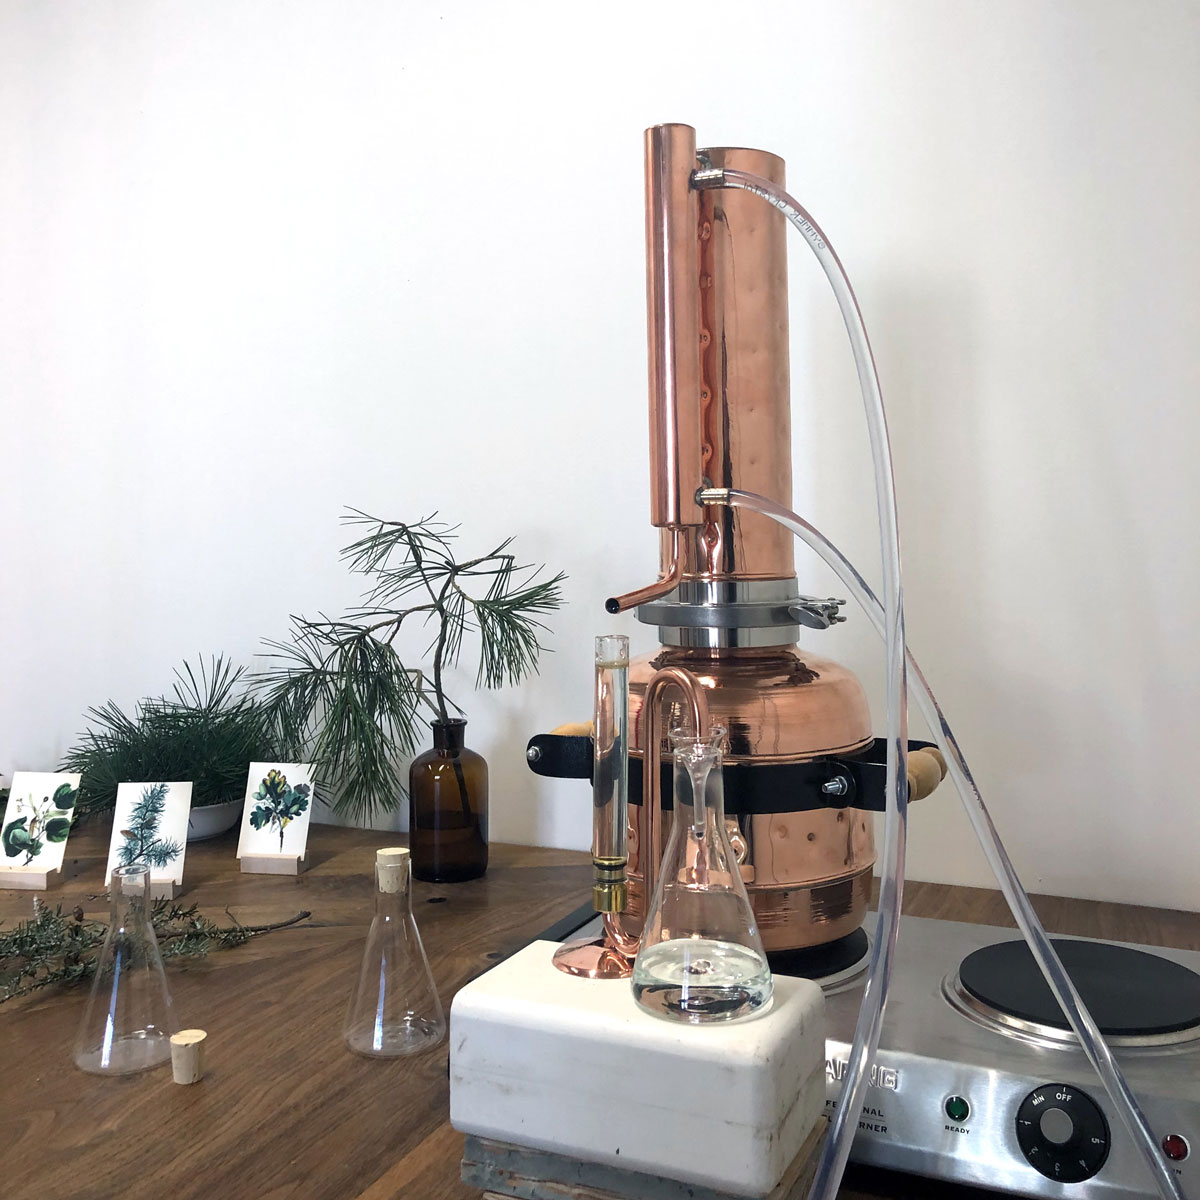 Instruments used to distill sent of plants